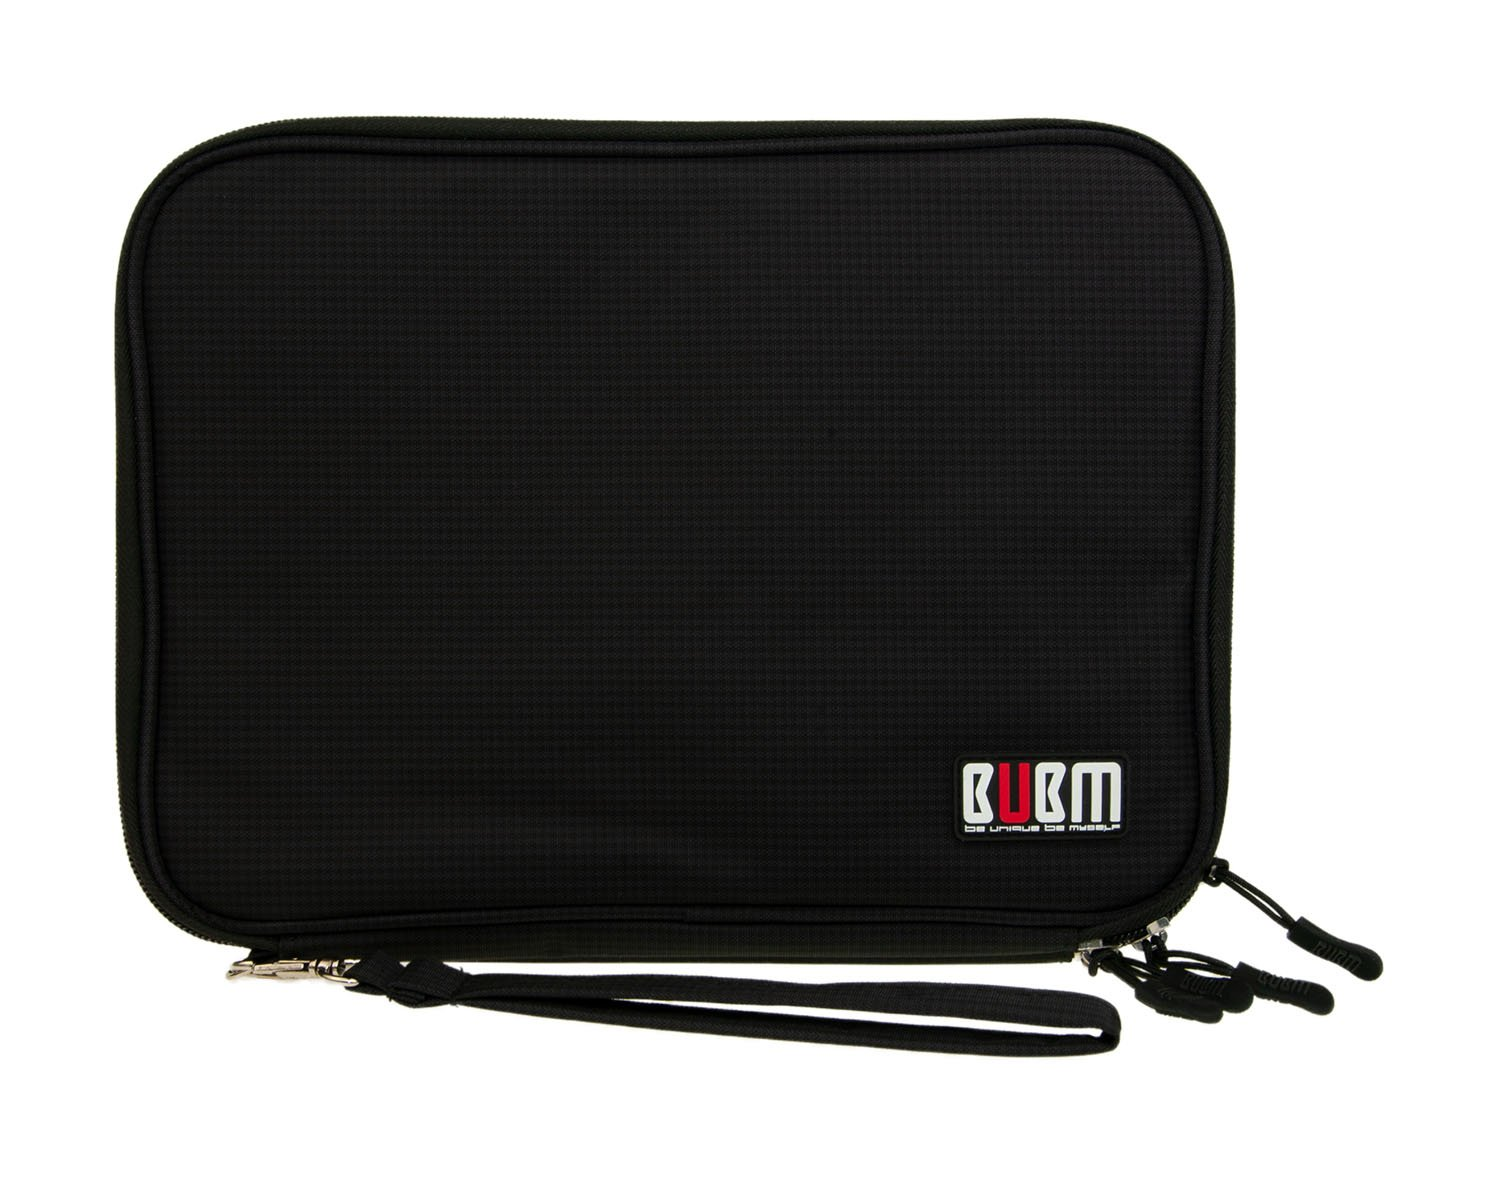 Offex BUBM Double Layer Portable Electronics Organizer for Smart Phones, Tablets, and Gaming Systems - Black